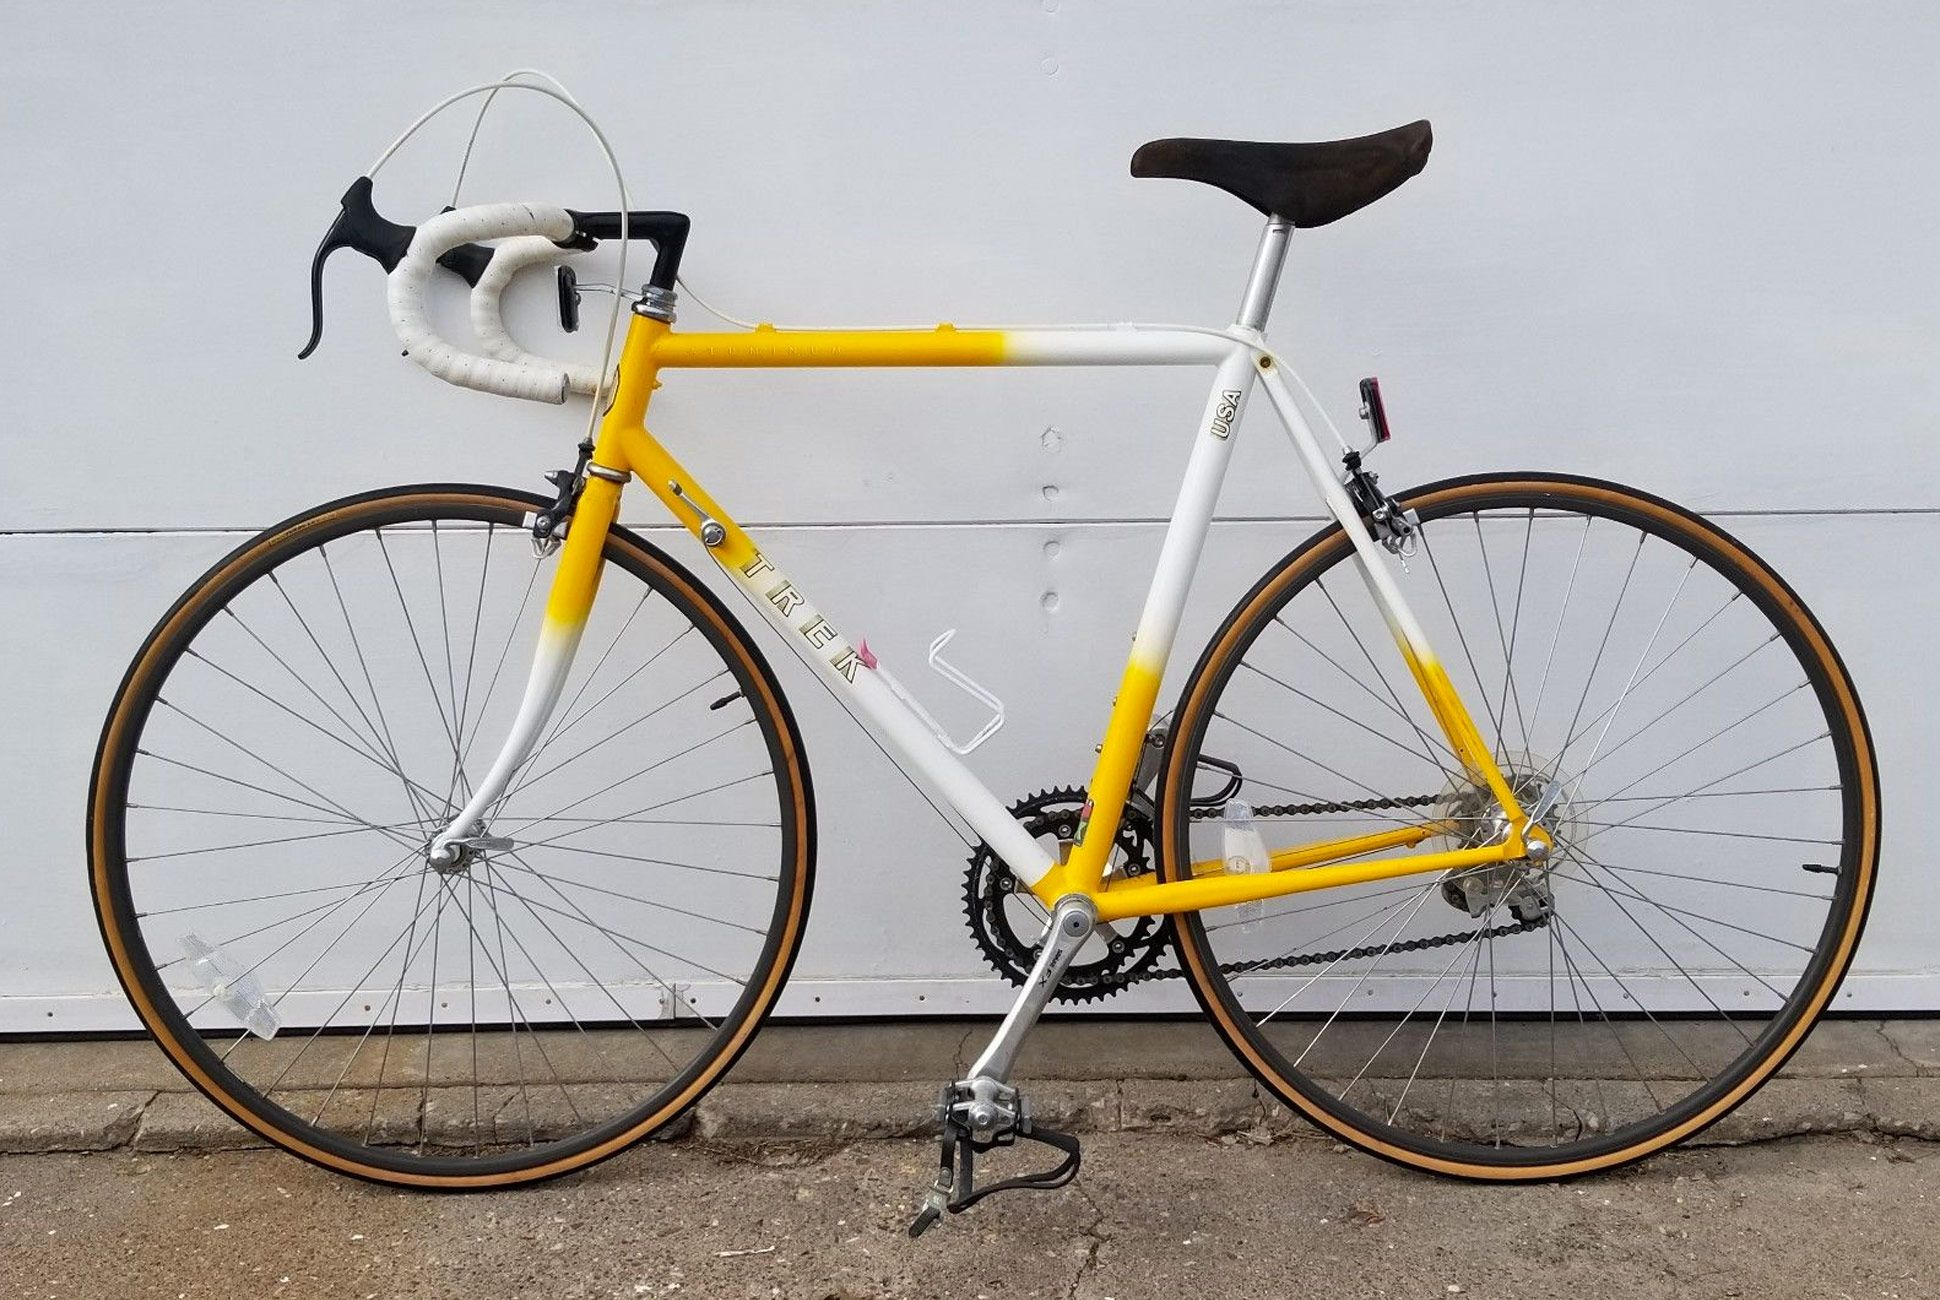 The Best Used Bikes Under $500 We'd Buy Right Now • Gear Patrol